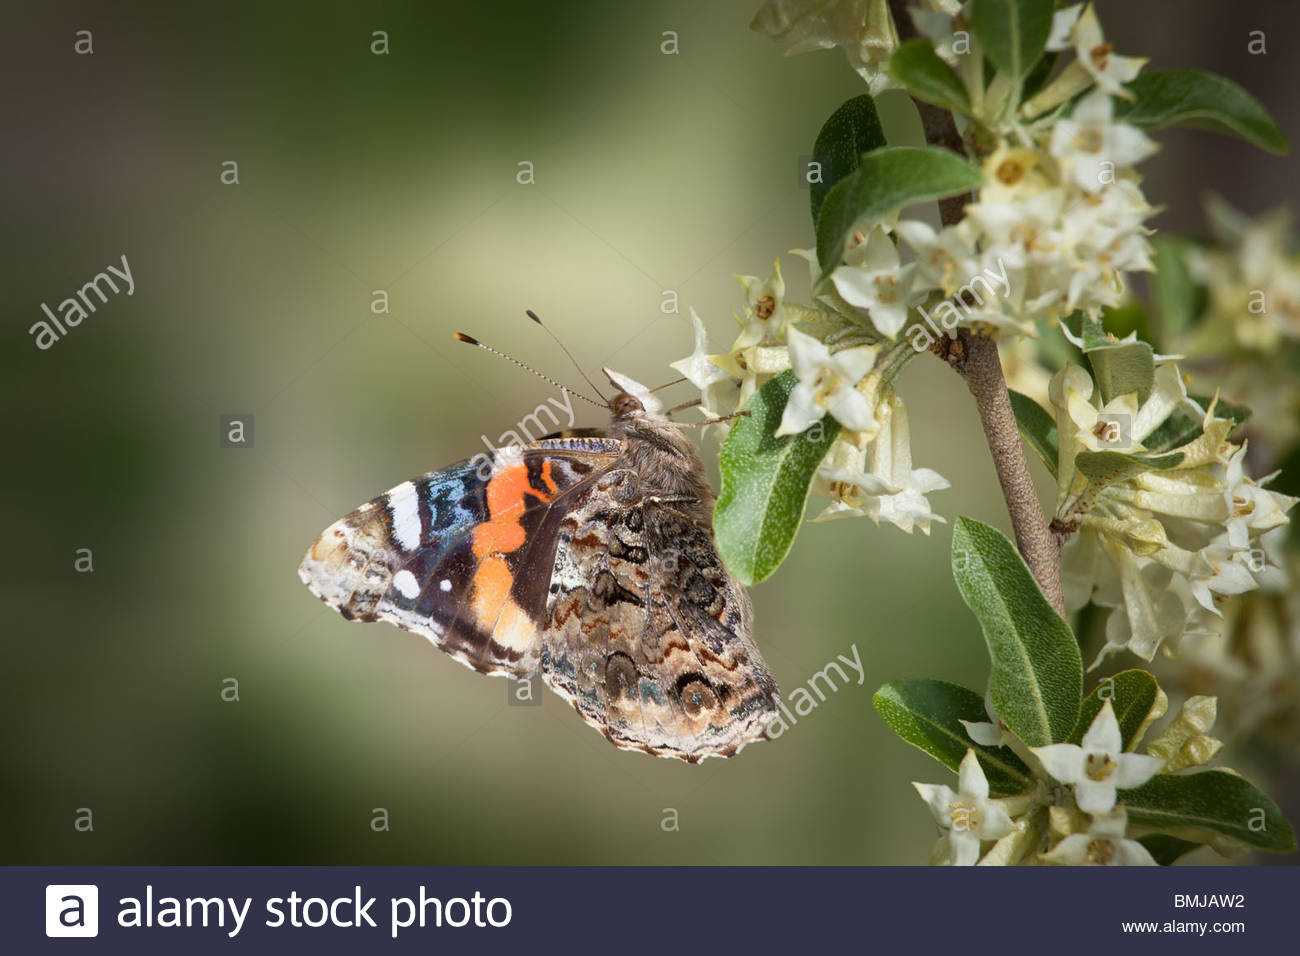 American Lady butterfly or Vanessa virginiensis in Rouge park an urban wilderness in Toronto Ontario Canada - Stock Image